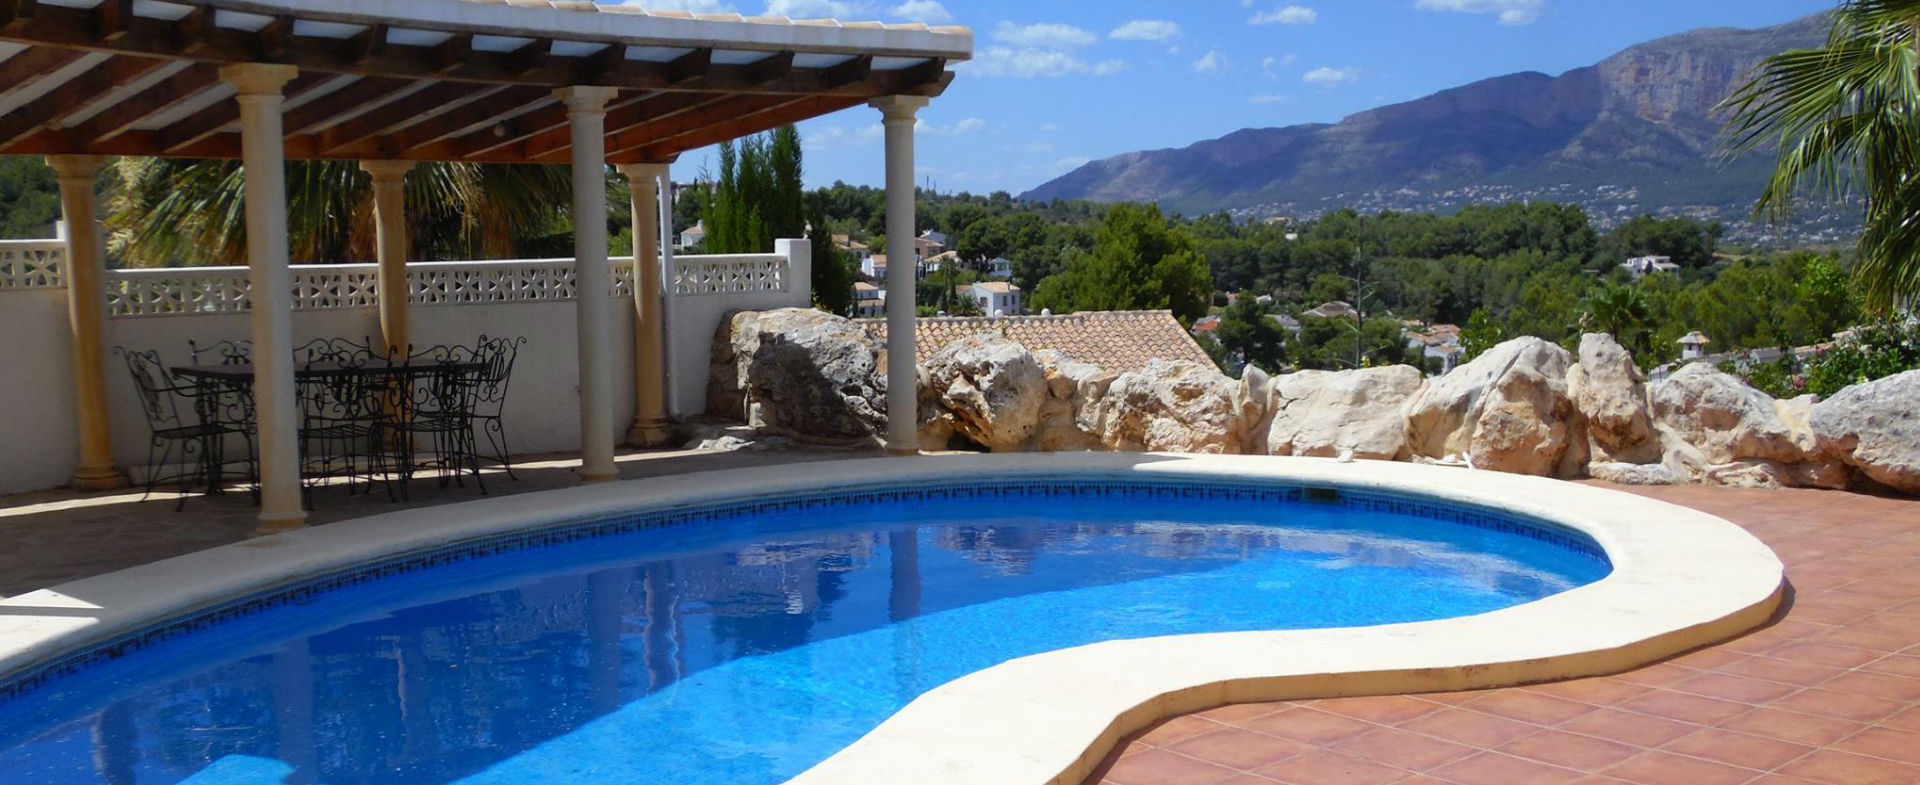 Swimming Pool Cleaners Javea